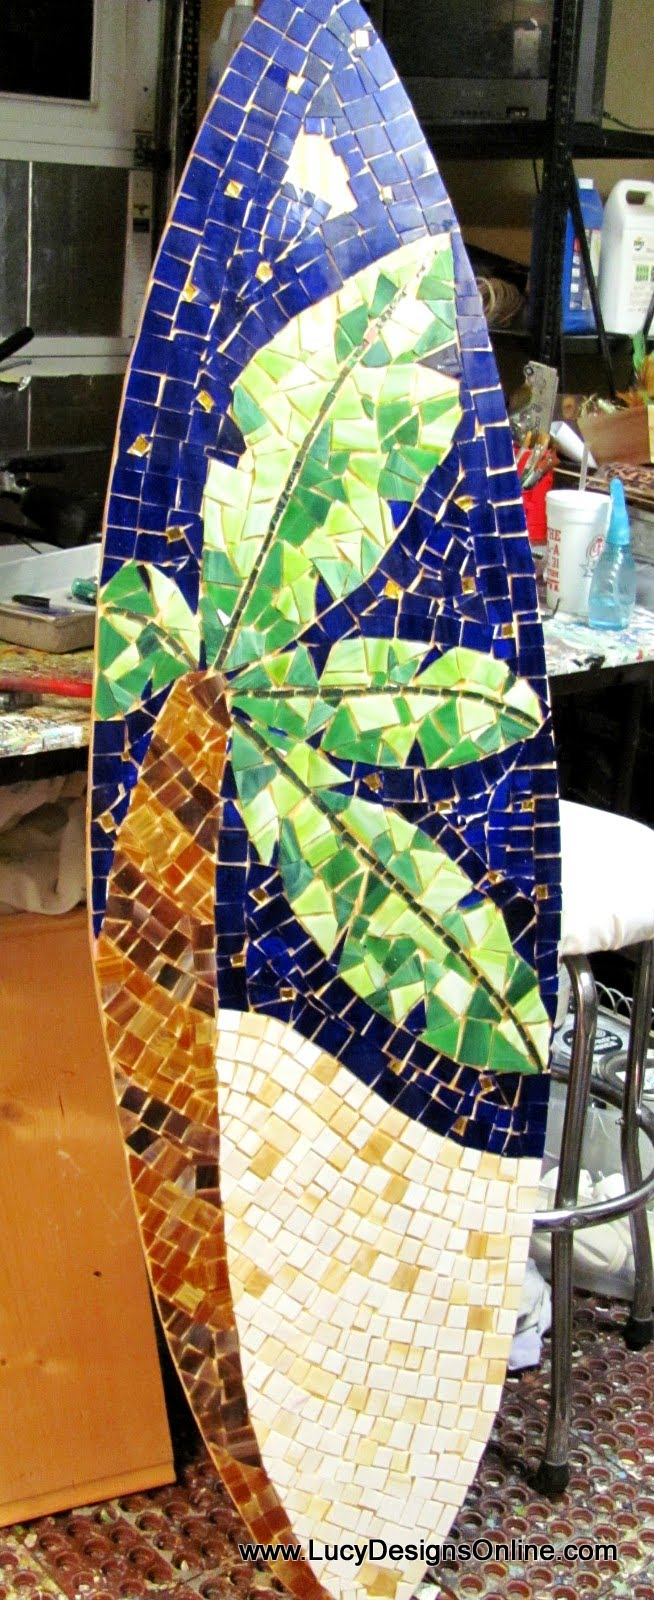 palm tree design stained glass mosaic surfboard